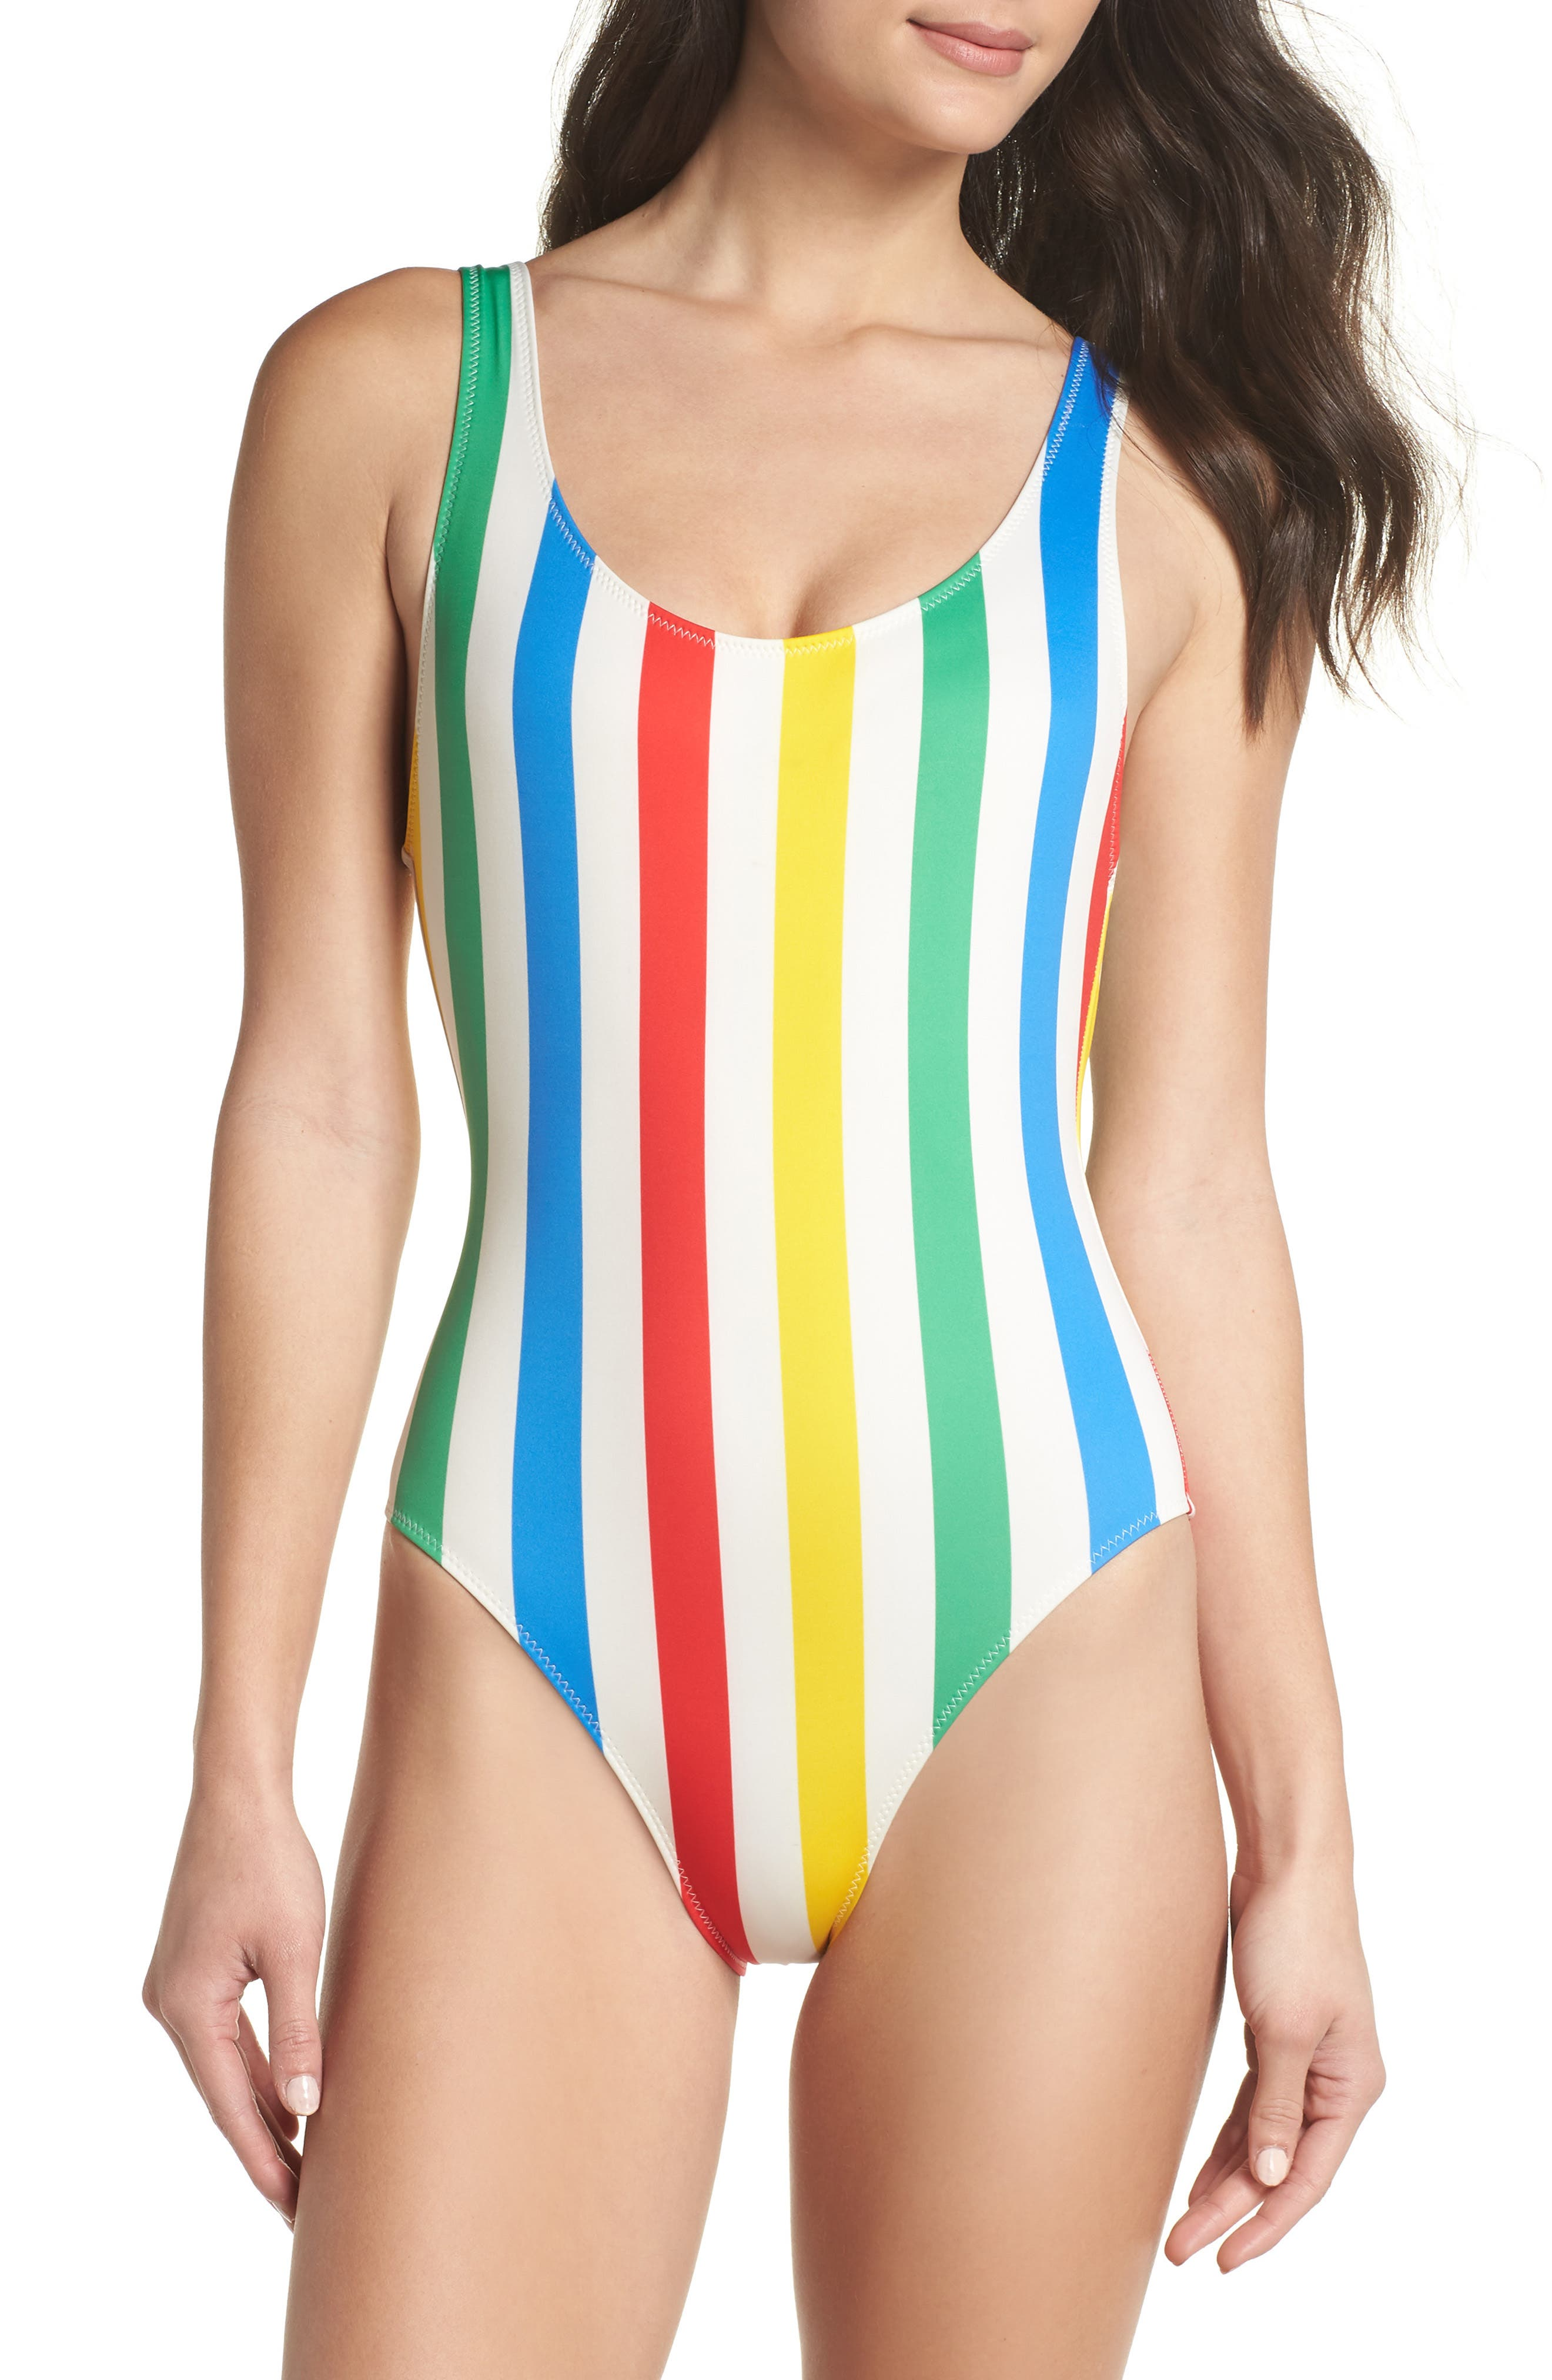 Anne Marie Open Back One-Piece Swimsuit,                         Main,                         color, PRIMARY STRIPE